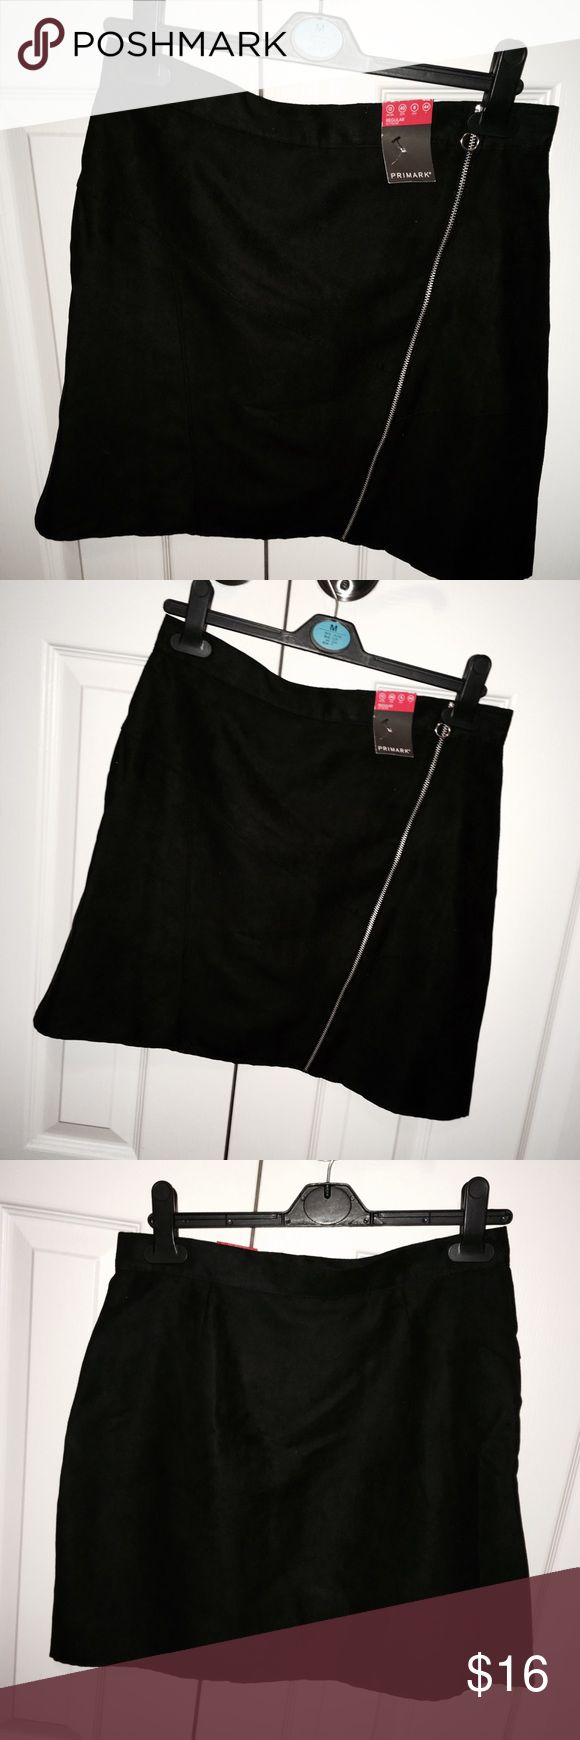 Black suede high wasted skirt with zipper Super cute black suede skirt – never been worn!! Great for a night out or something cute in the winter and fall season with boots. This piece is a size 8; tags still on it and in amazing condition. The Size 8 but fits like a size 6 because of the wrap around waist. This unique skirt comes with a chrome zipper that gives the look a subtle but sexy edge that every one is looking for. Atmosphere Skirts Midi